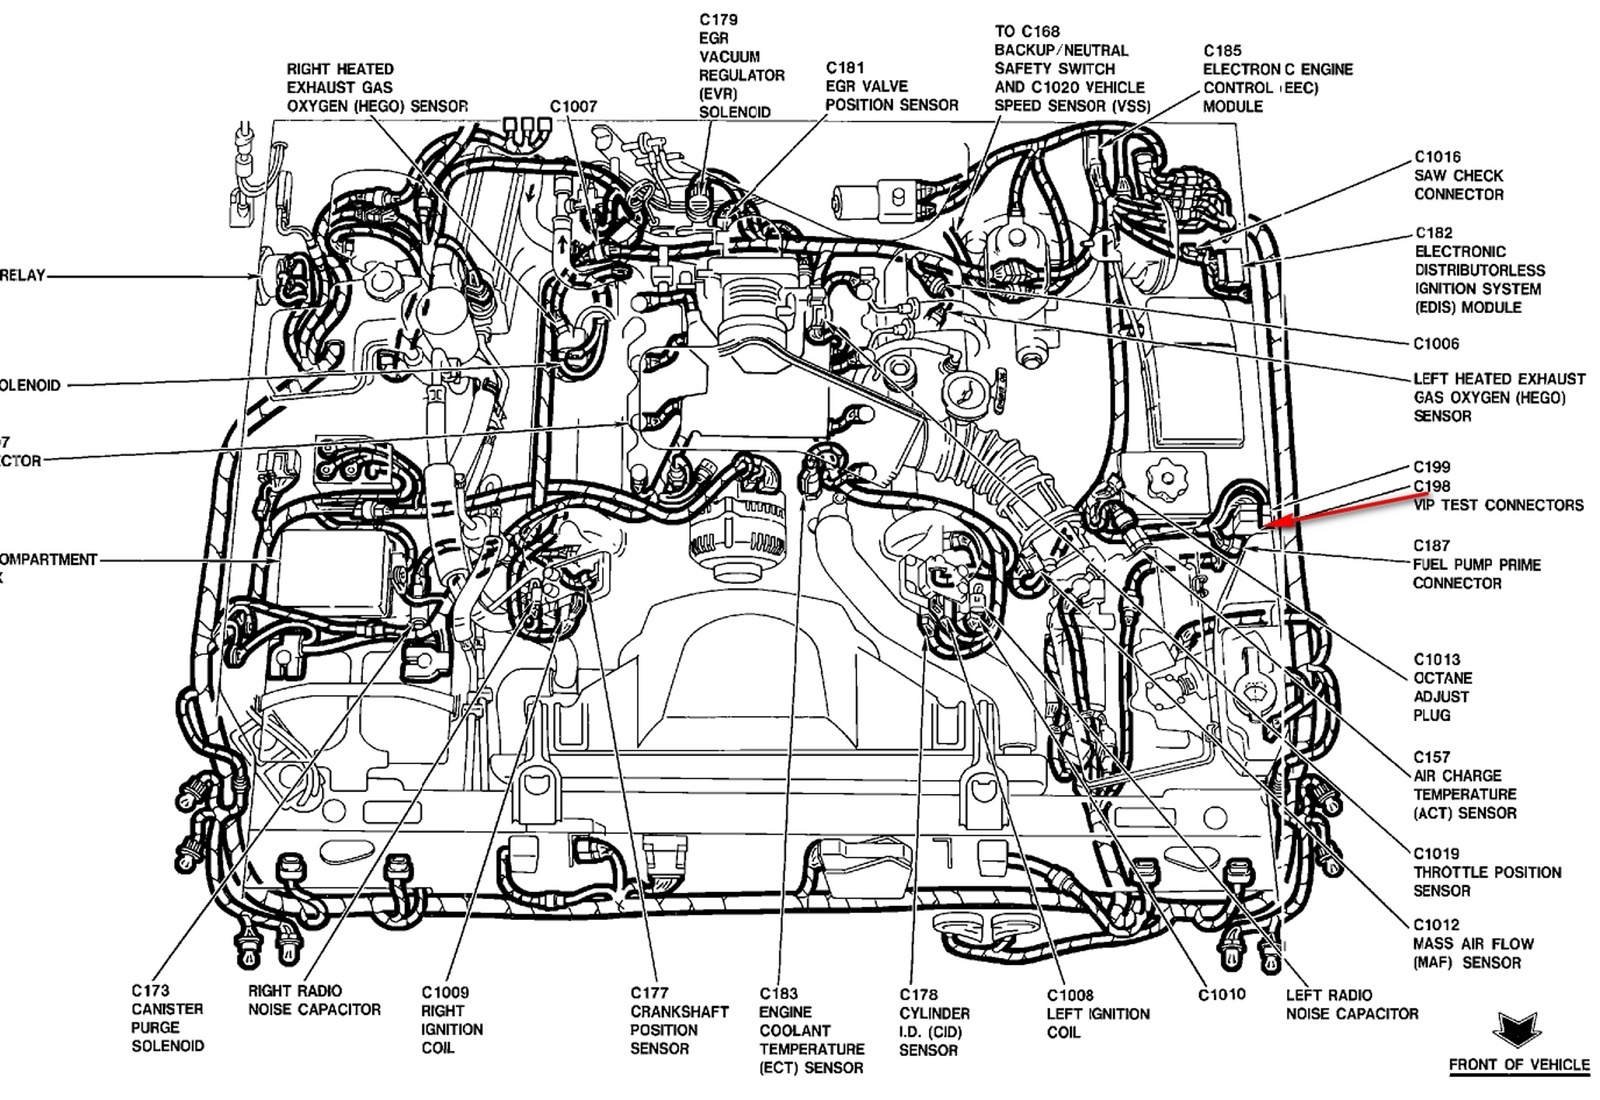 Chevy Impala Wiring Diagram Chevy Wiring Diagram Images